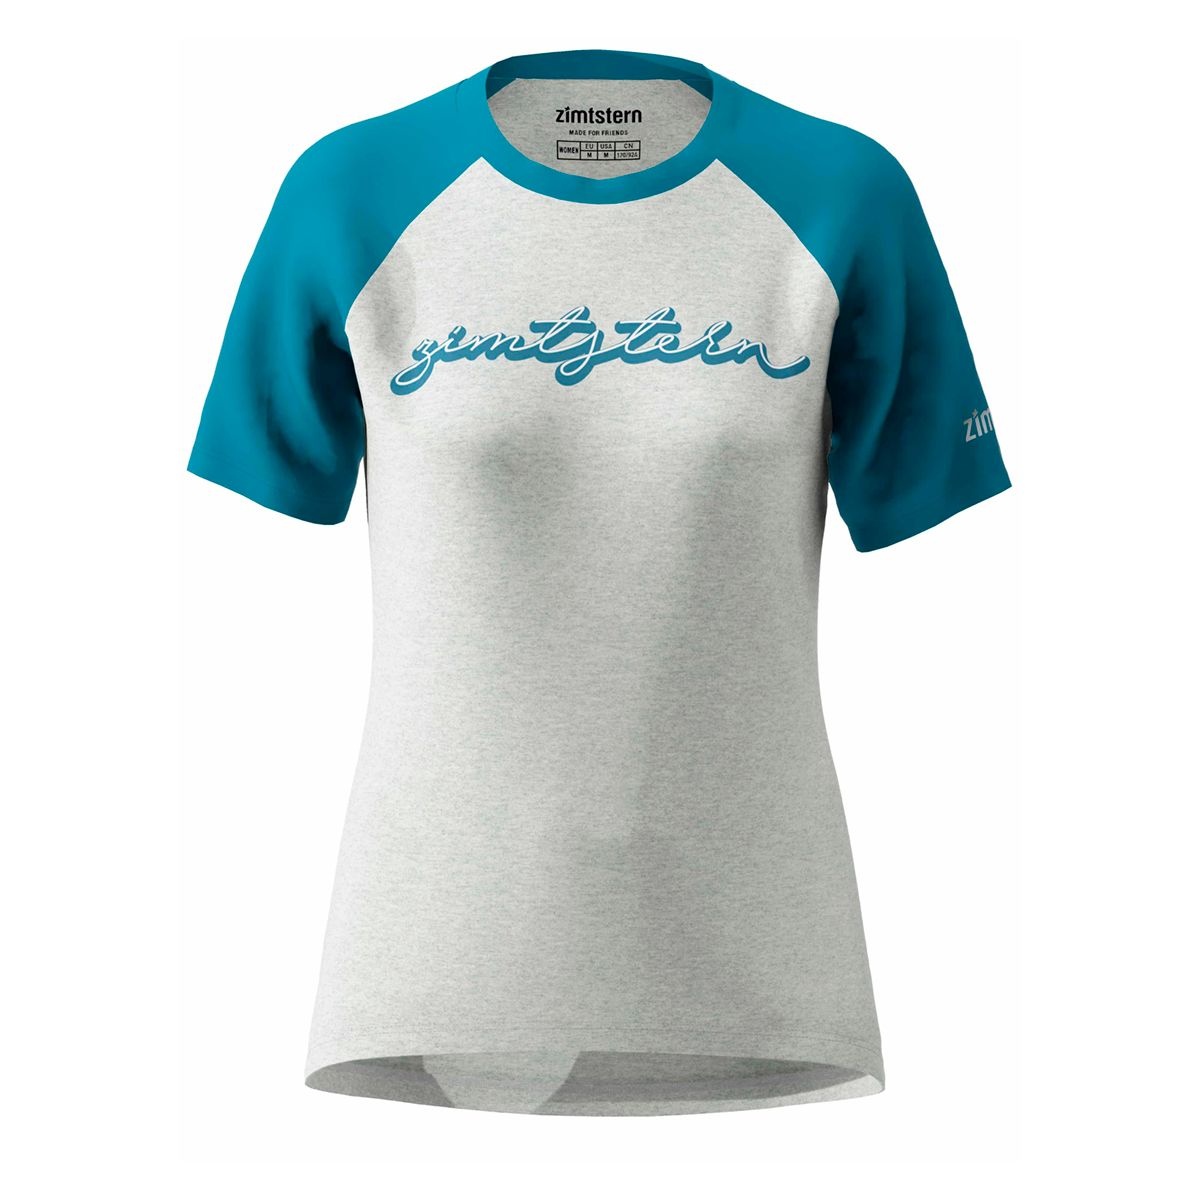 SWEETZ TEE WMNS Shirt